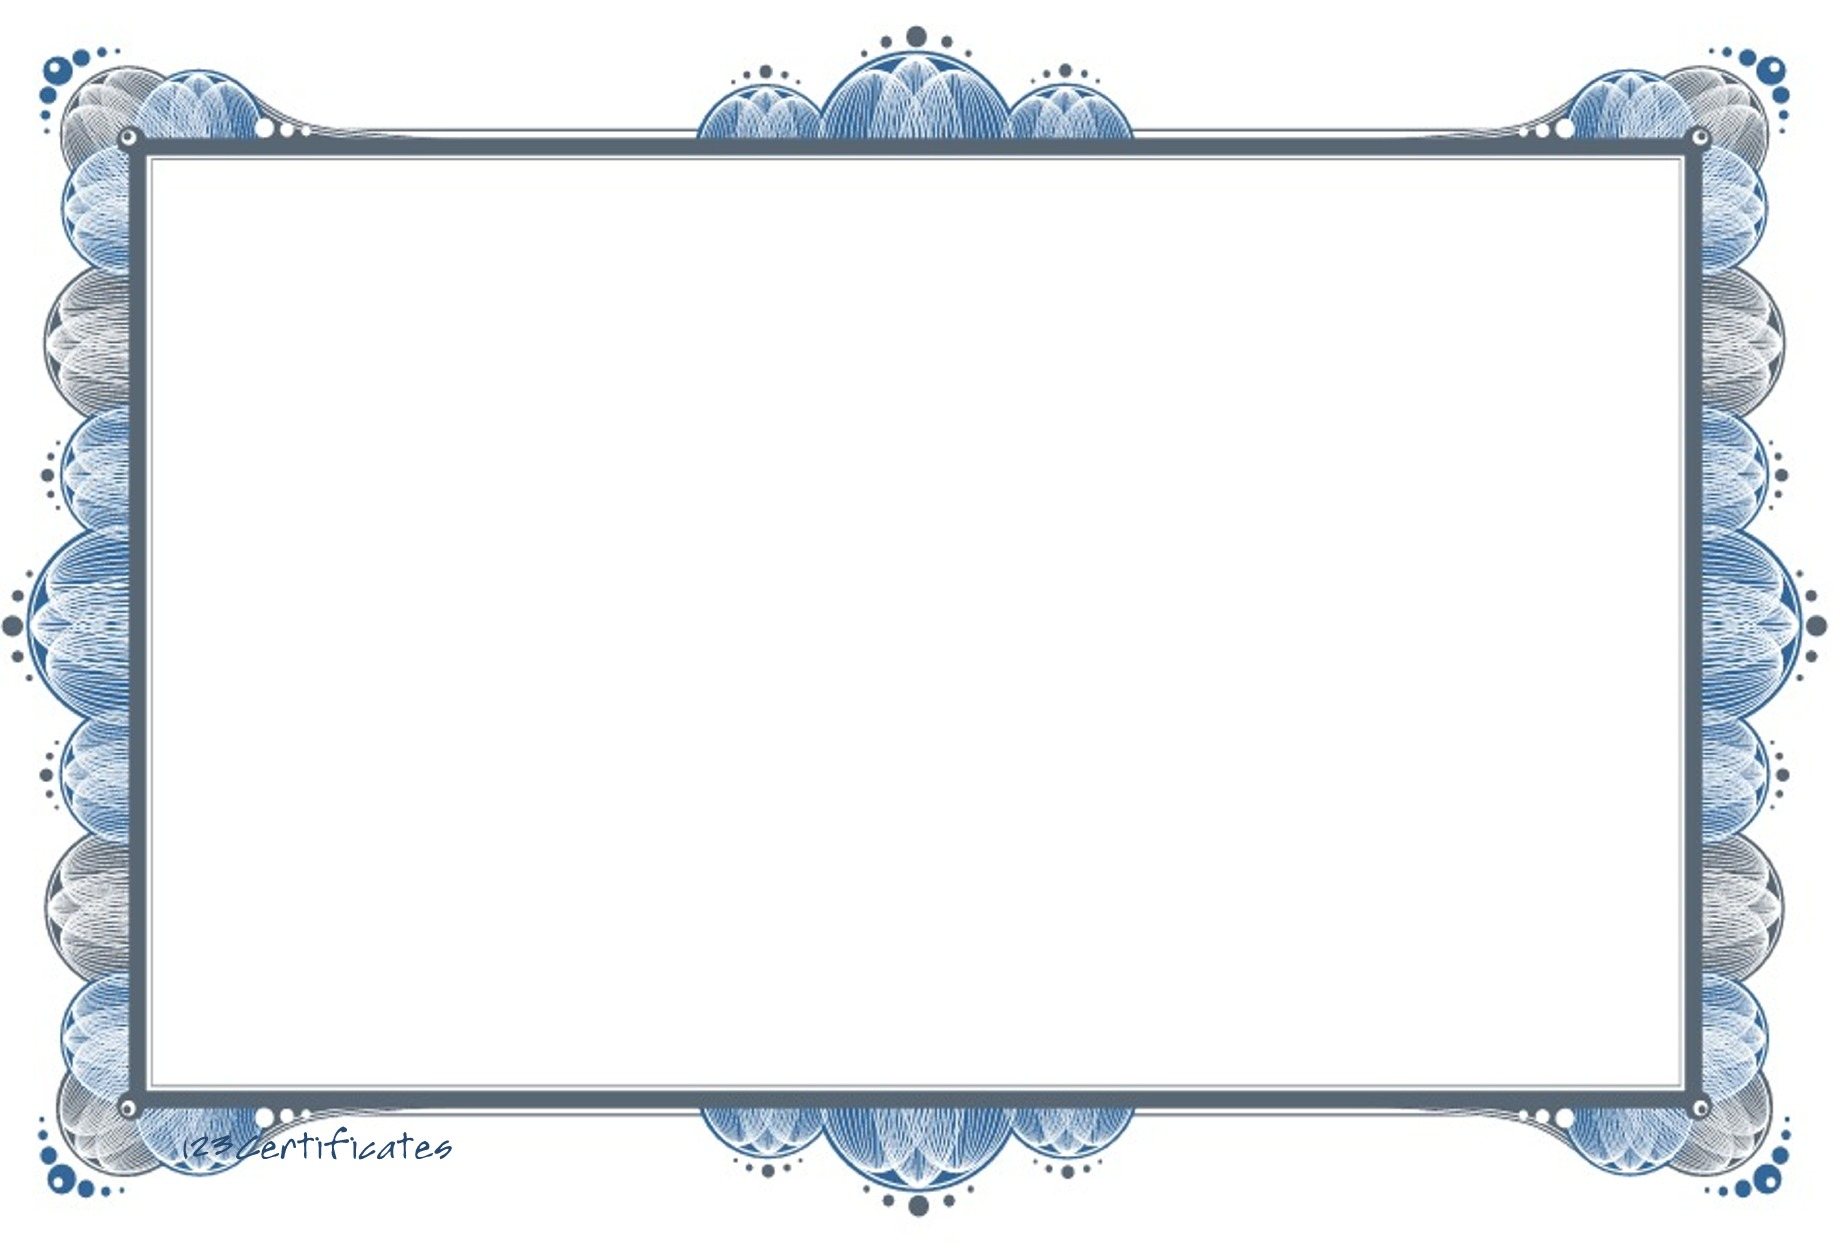 free certificate border artwork, certificate background templates ...